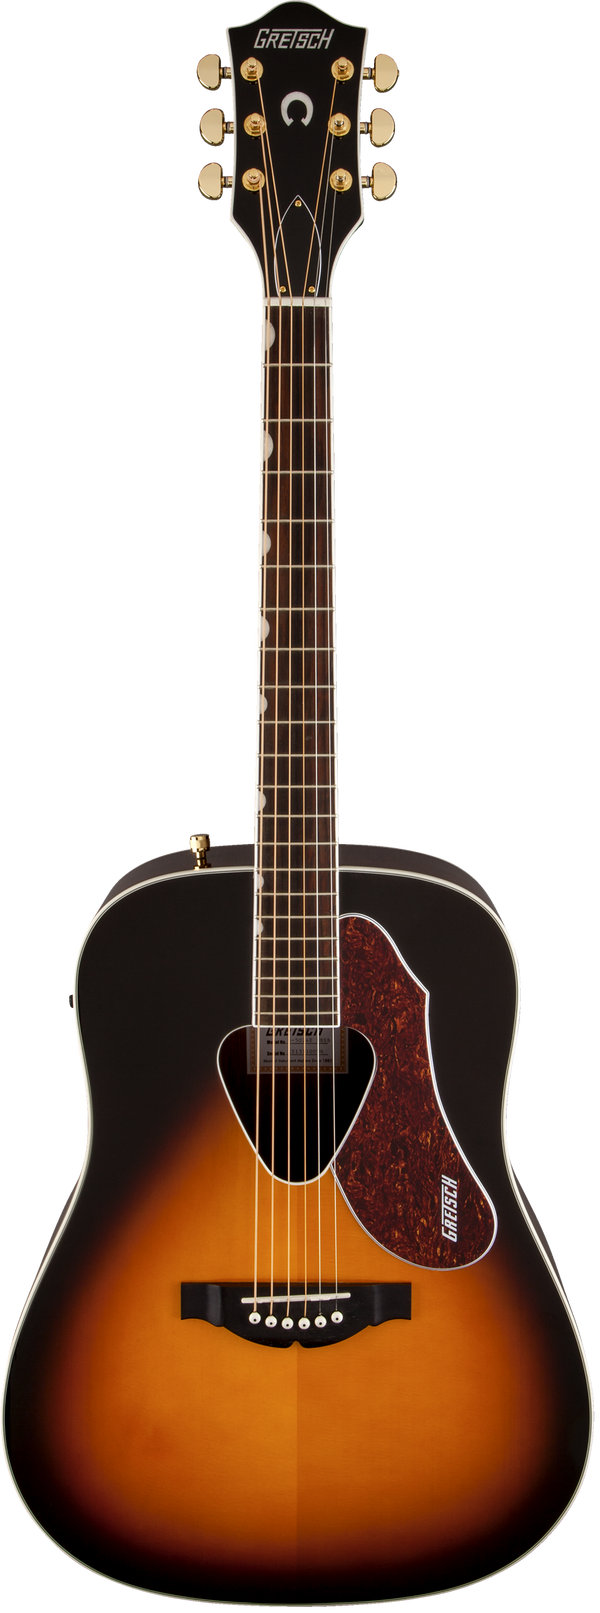 G5024E RANCHER DREADNOUGHT ACOUSTIC / ELECTRIC